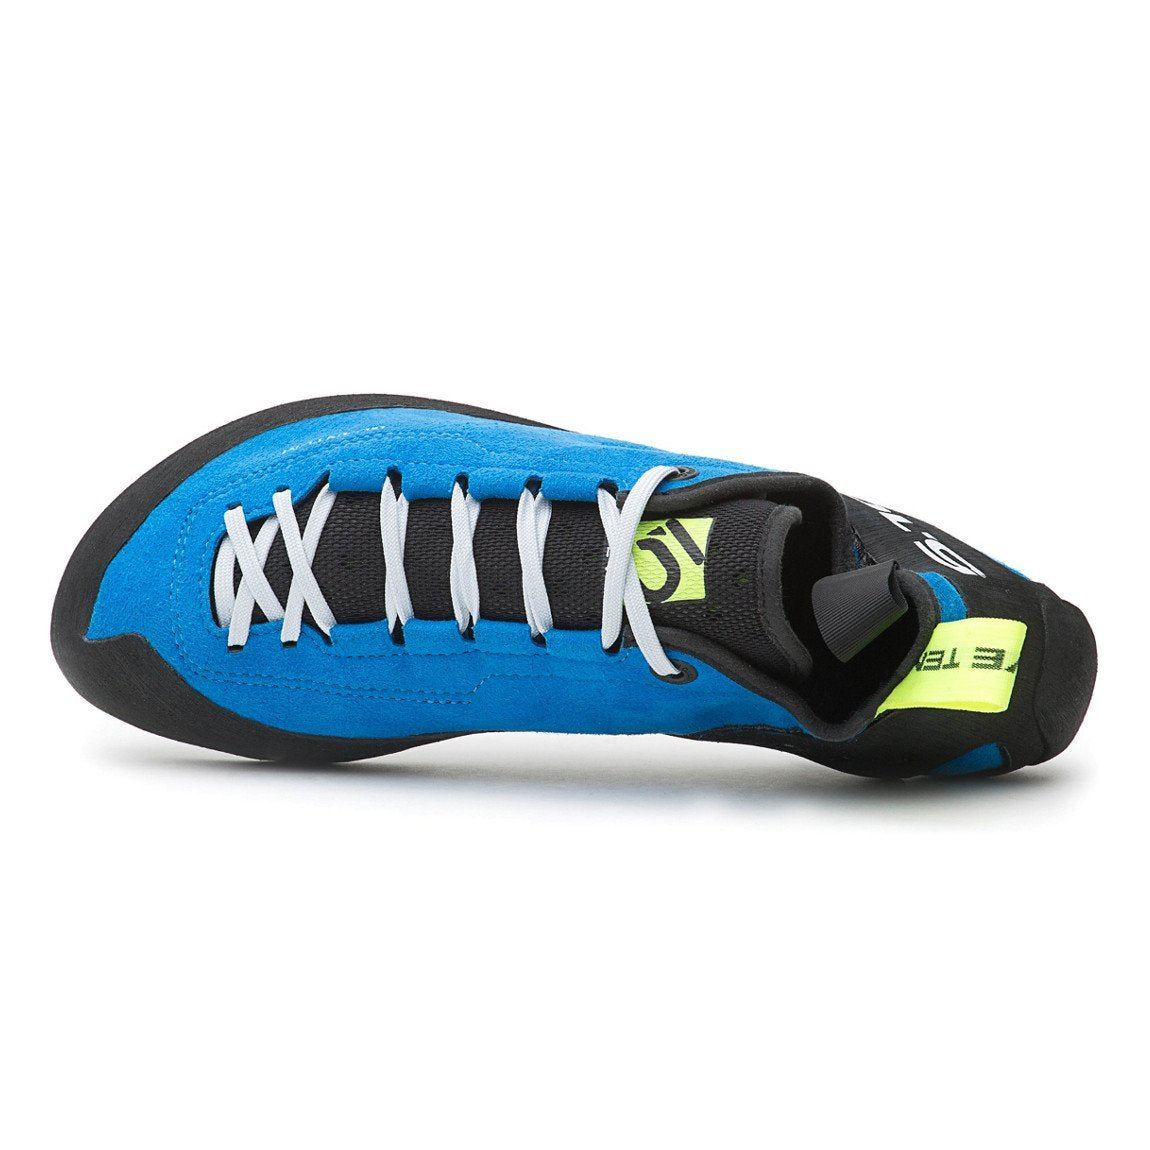 Five Ten Quantum climbing shoe, birds eye view